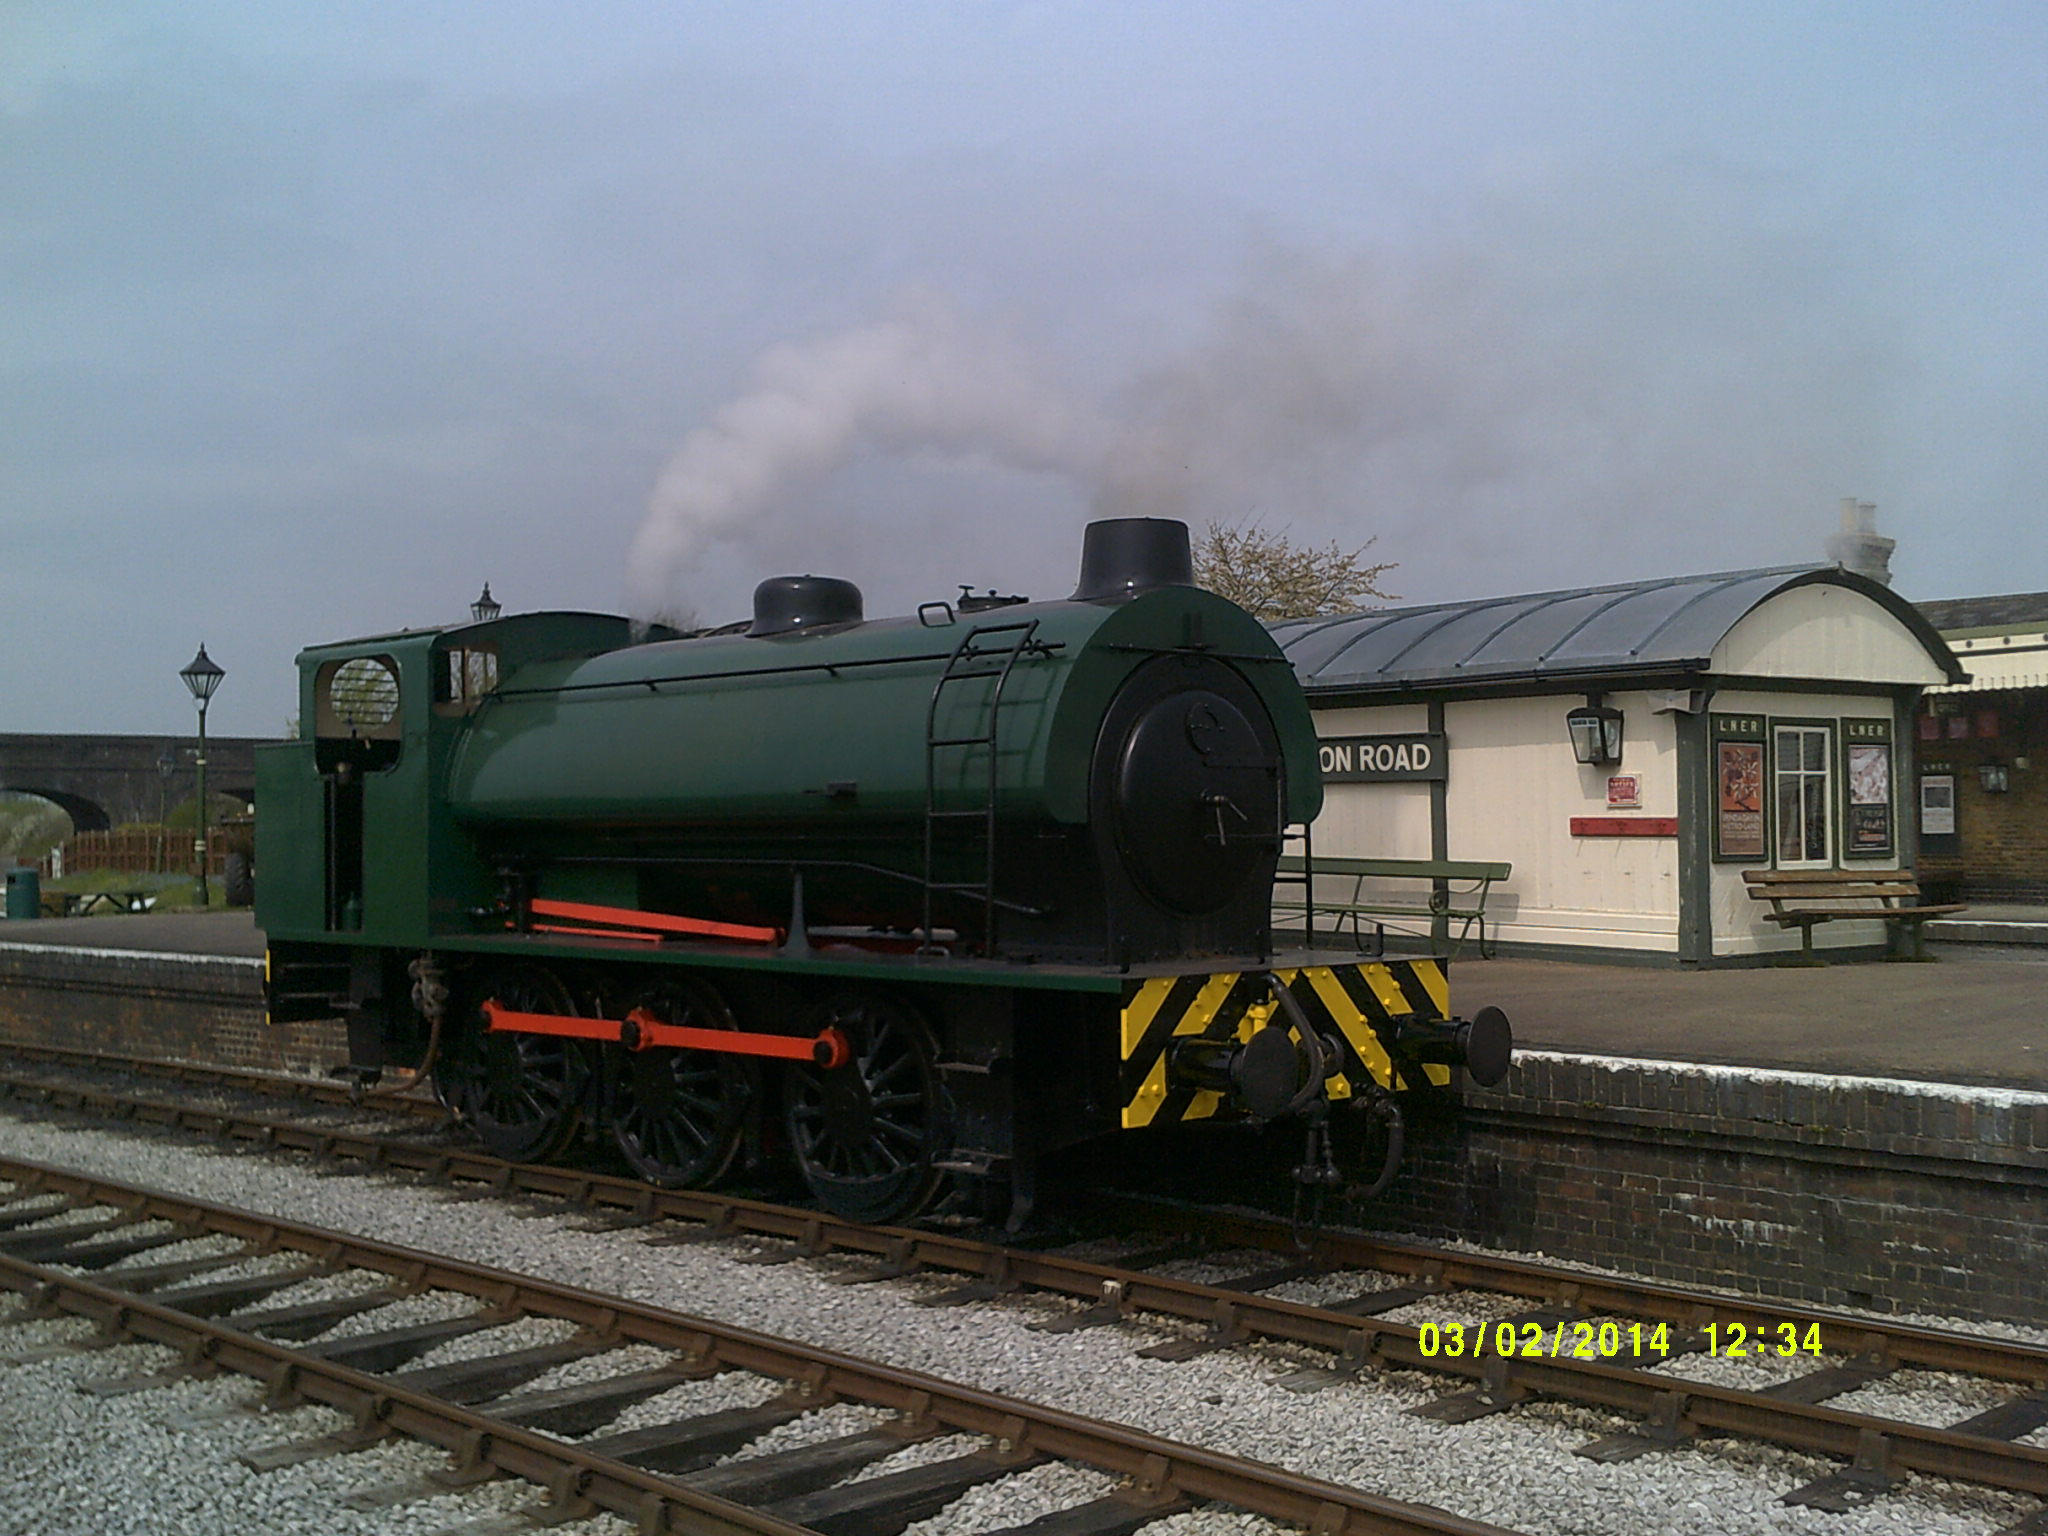 NCB66 on first steam test 24th April 2015